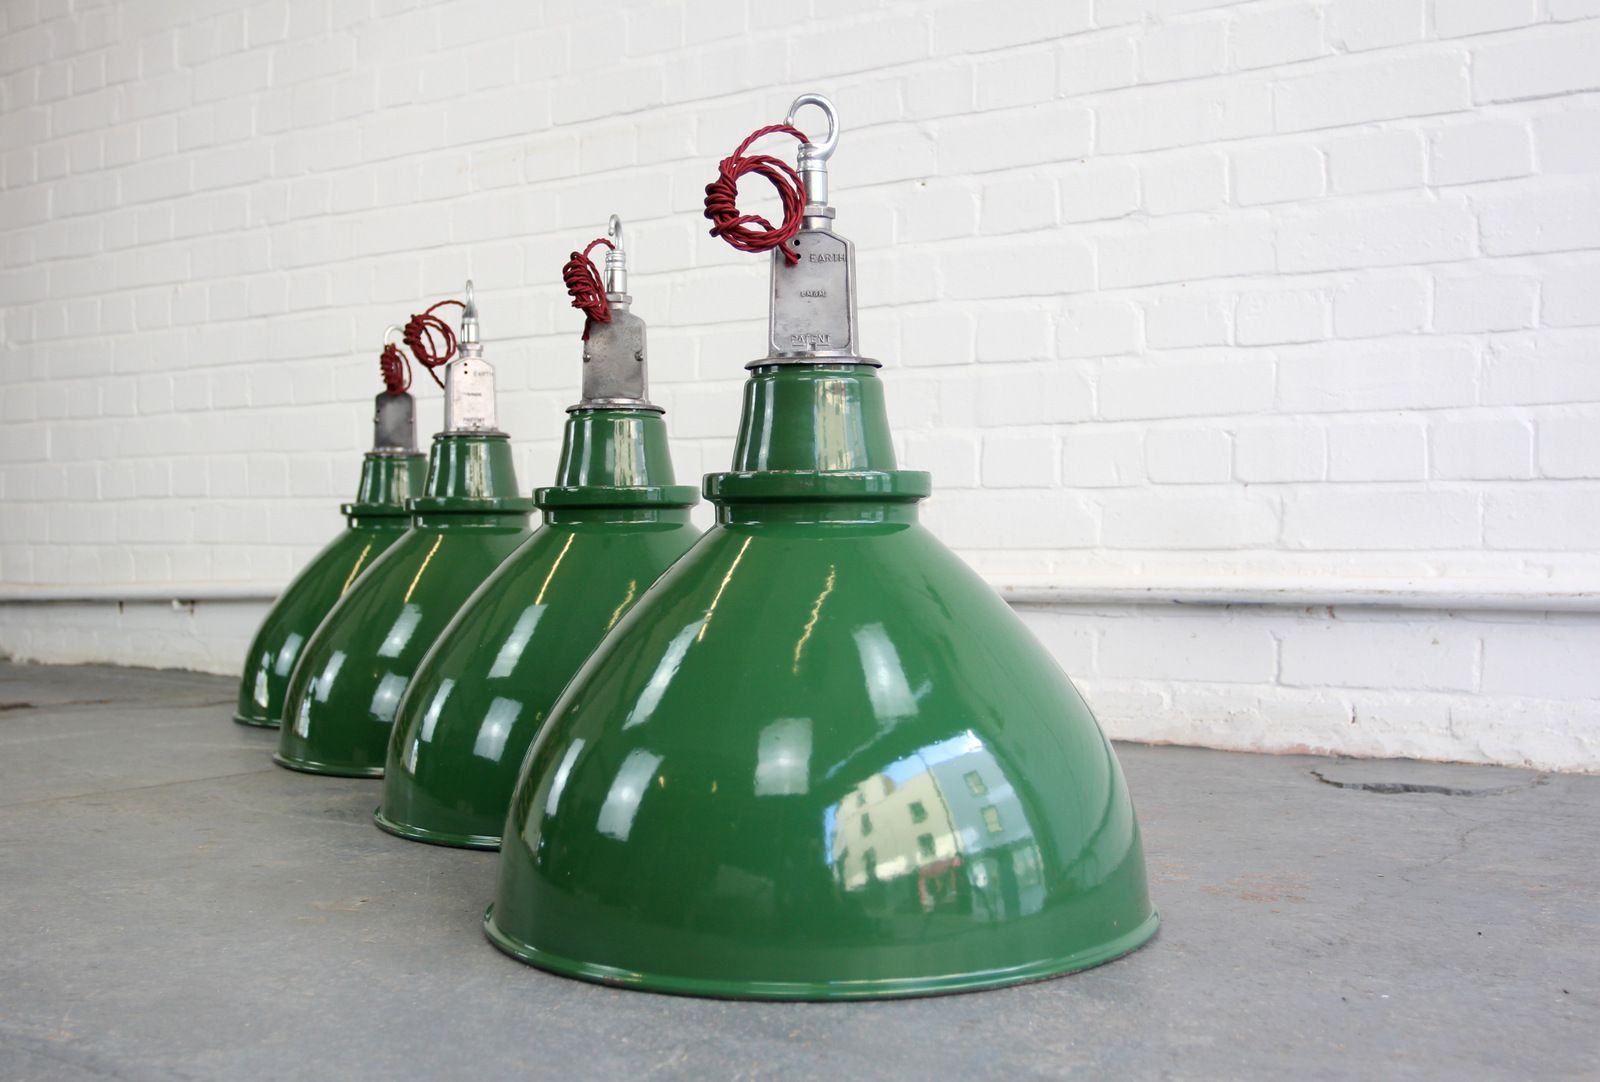 Large ww2 munitions factory pendant light from thorlux 1940s for large ww2 munitions factory pendant light from thorlux 1940s mozeypictures Image collections